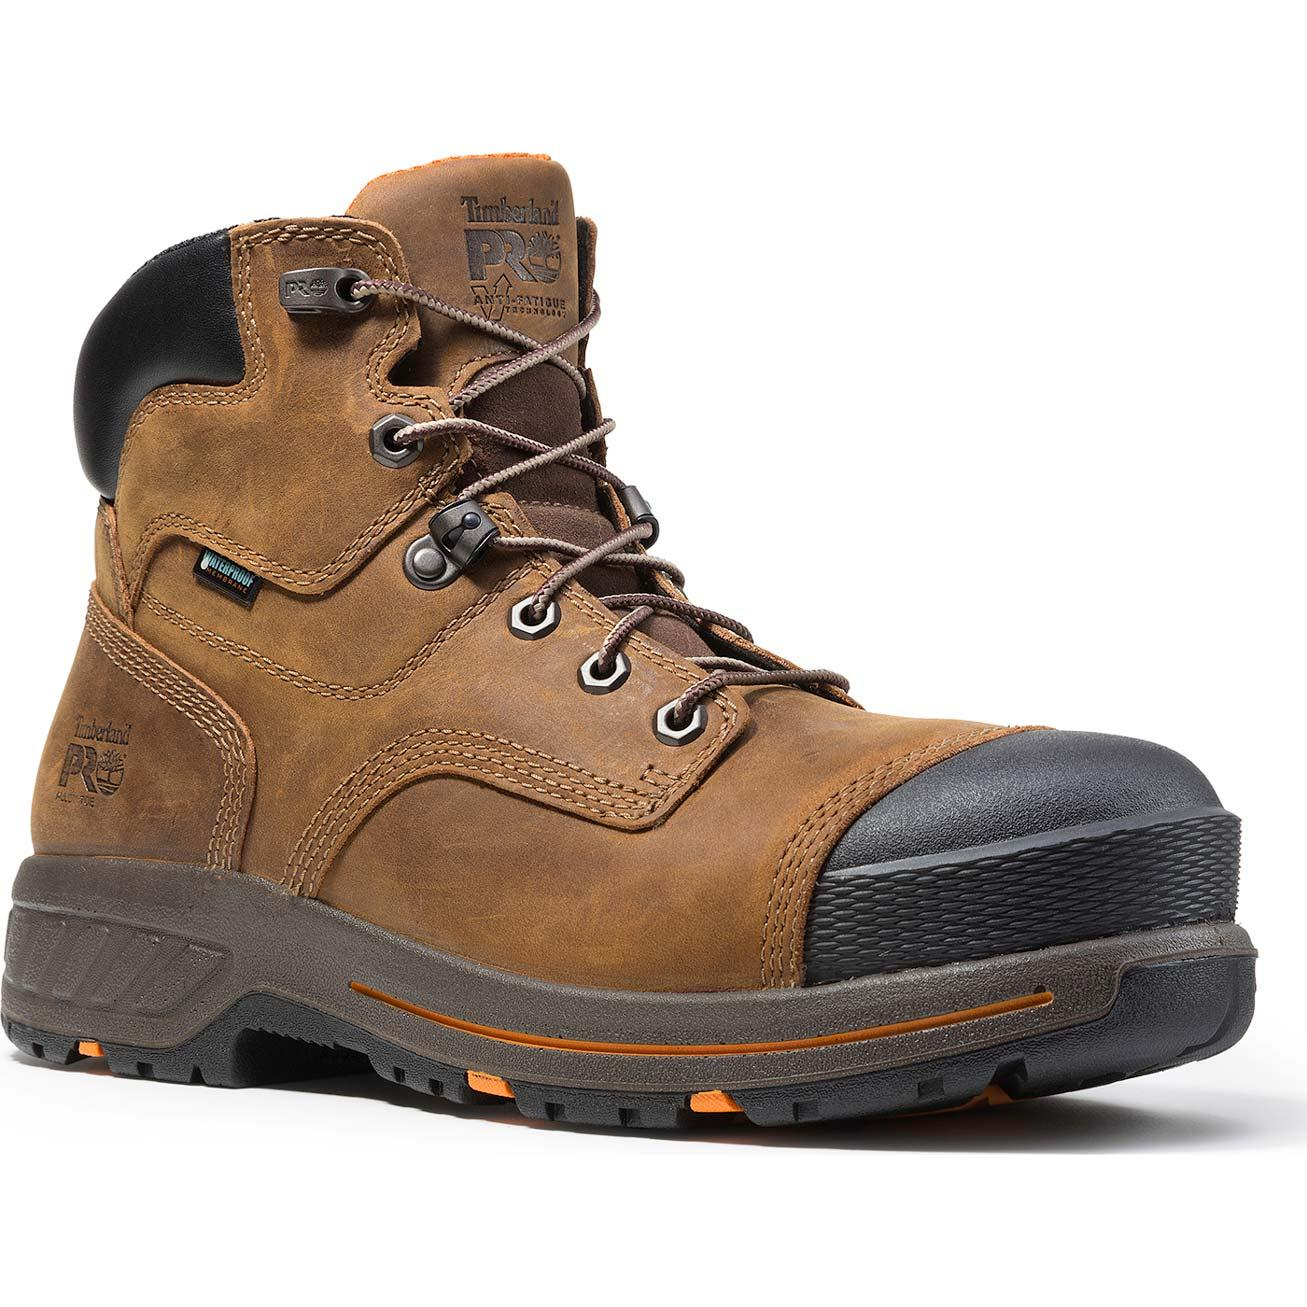 Timberland Pro Helix Hd Composite Toe Waterproof Work Boot